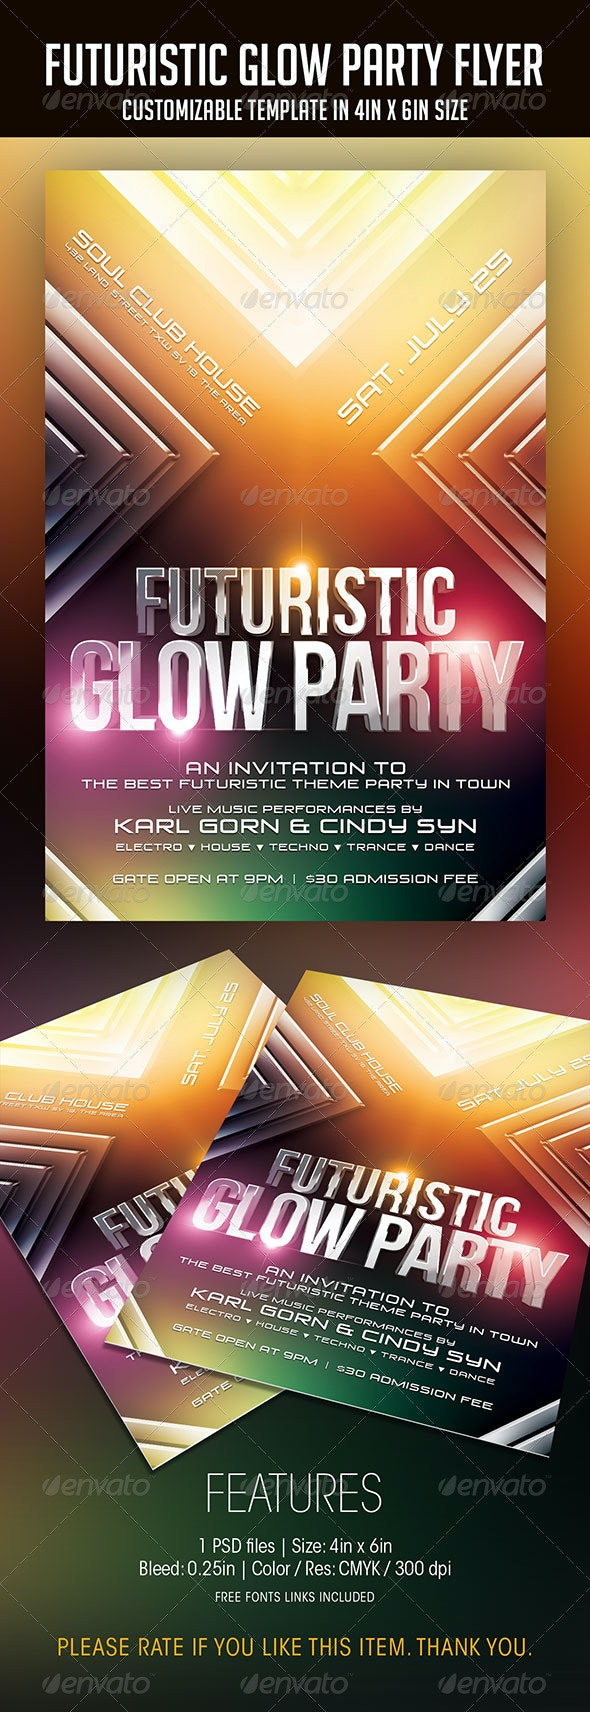 Futuristic Glow Party Flyer - Clubs & Parties Events